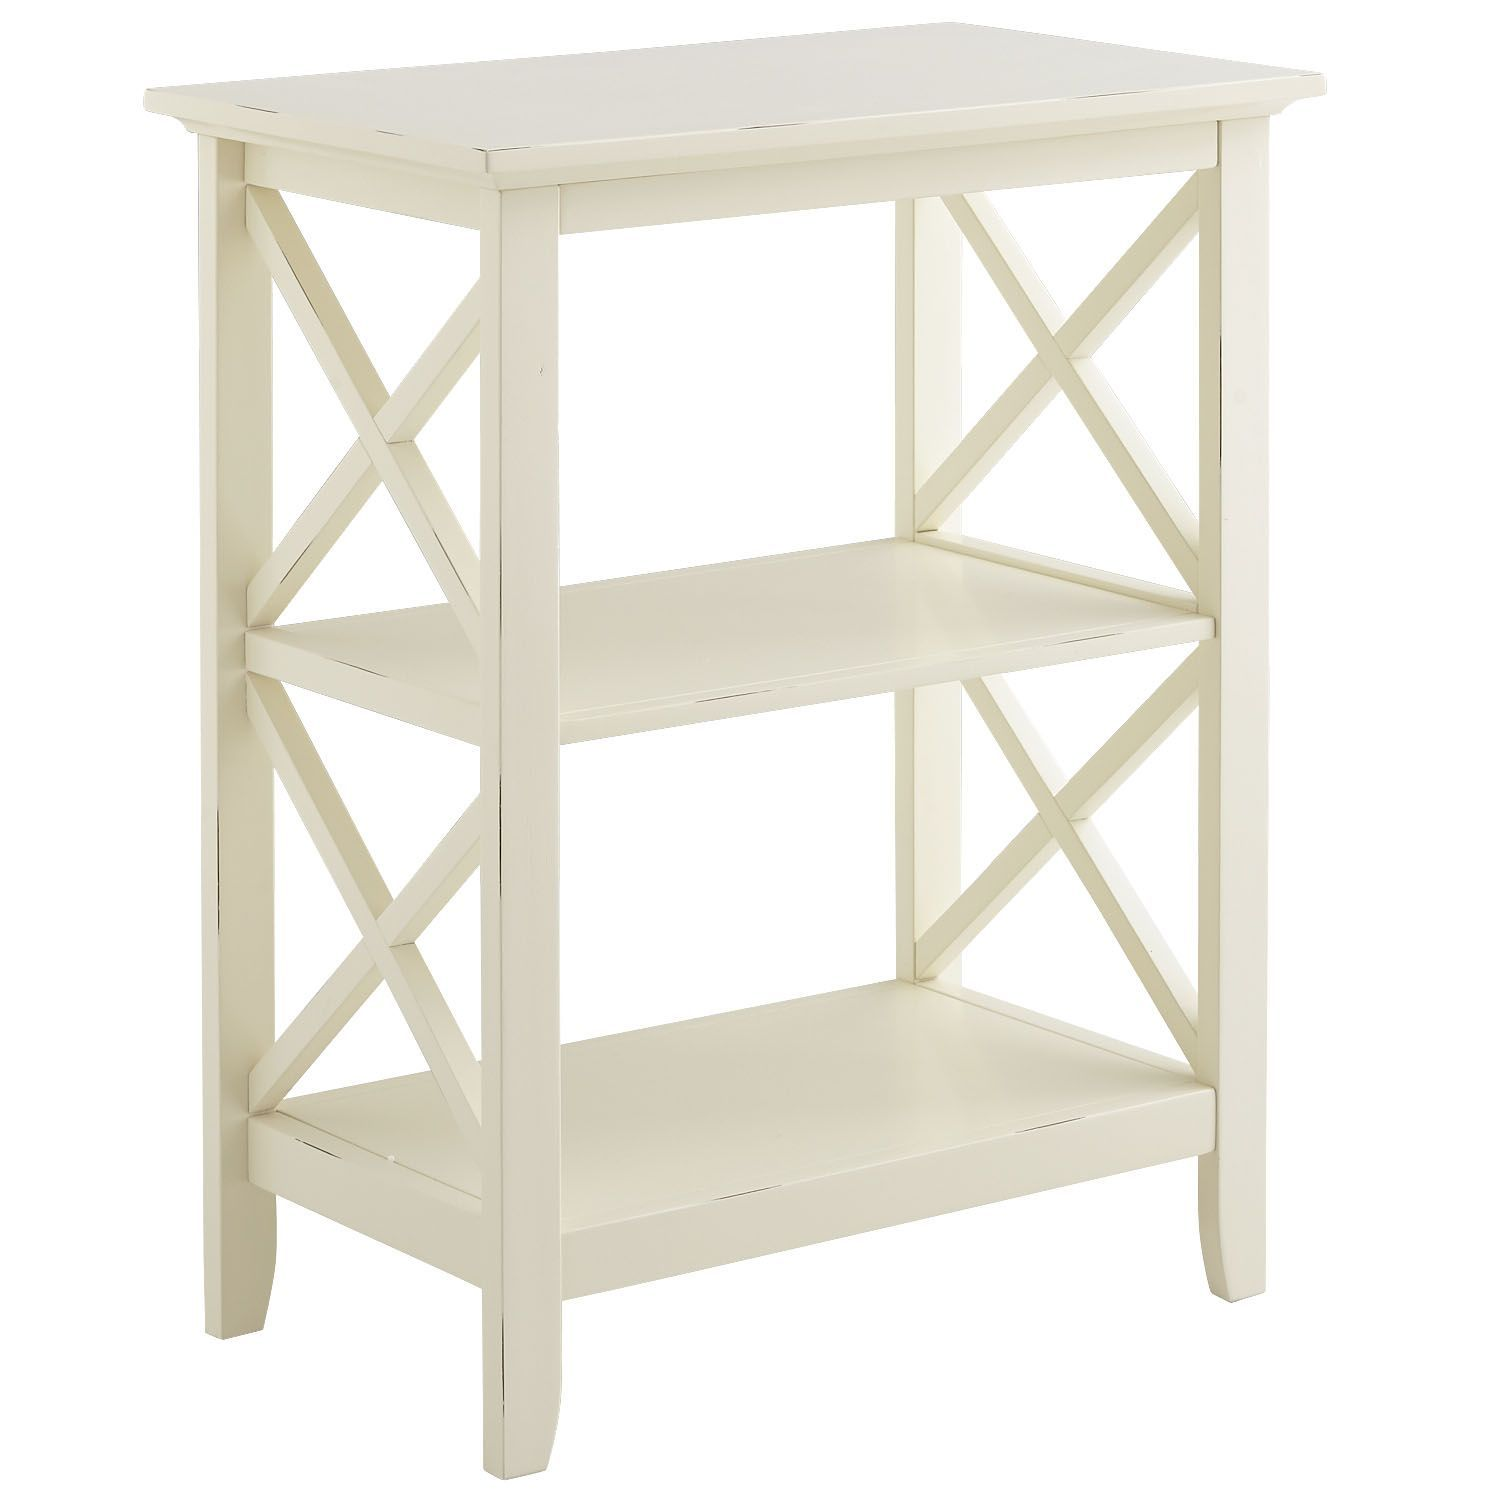 kenzie antique white accent table products black telephone wooden sawhorse legs nautical hanging lights target kitchen furniture round dining set for square nesting tables tiffany